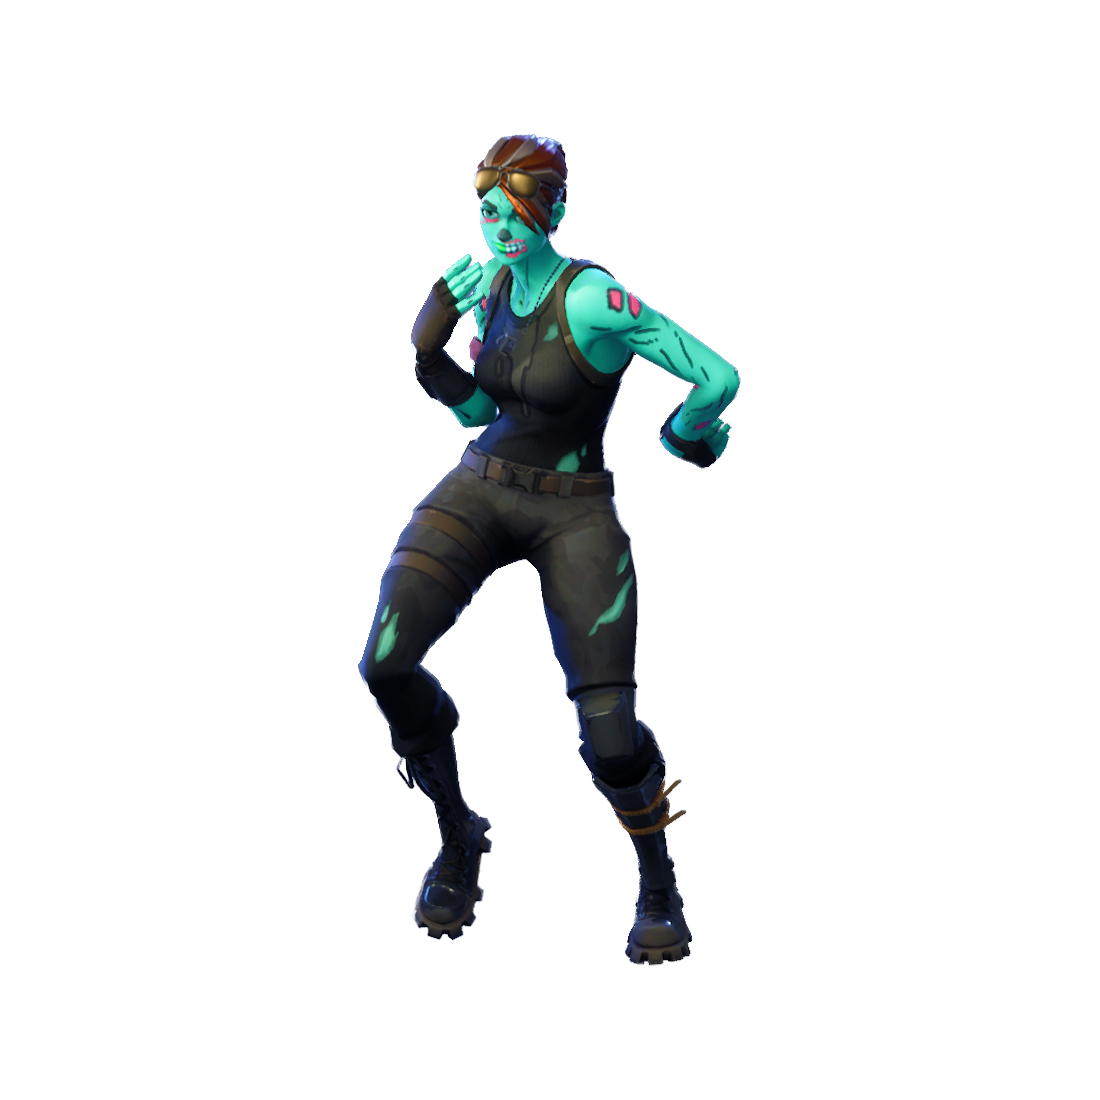 Fortnite default dance png. Rare boneless emote cosmetic